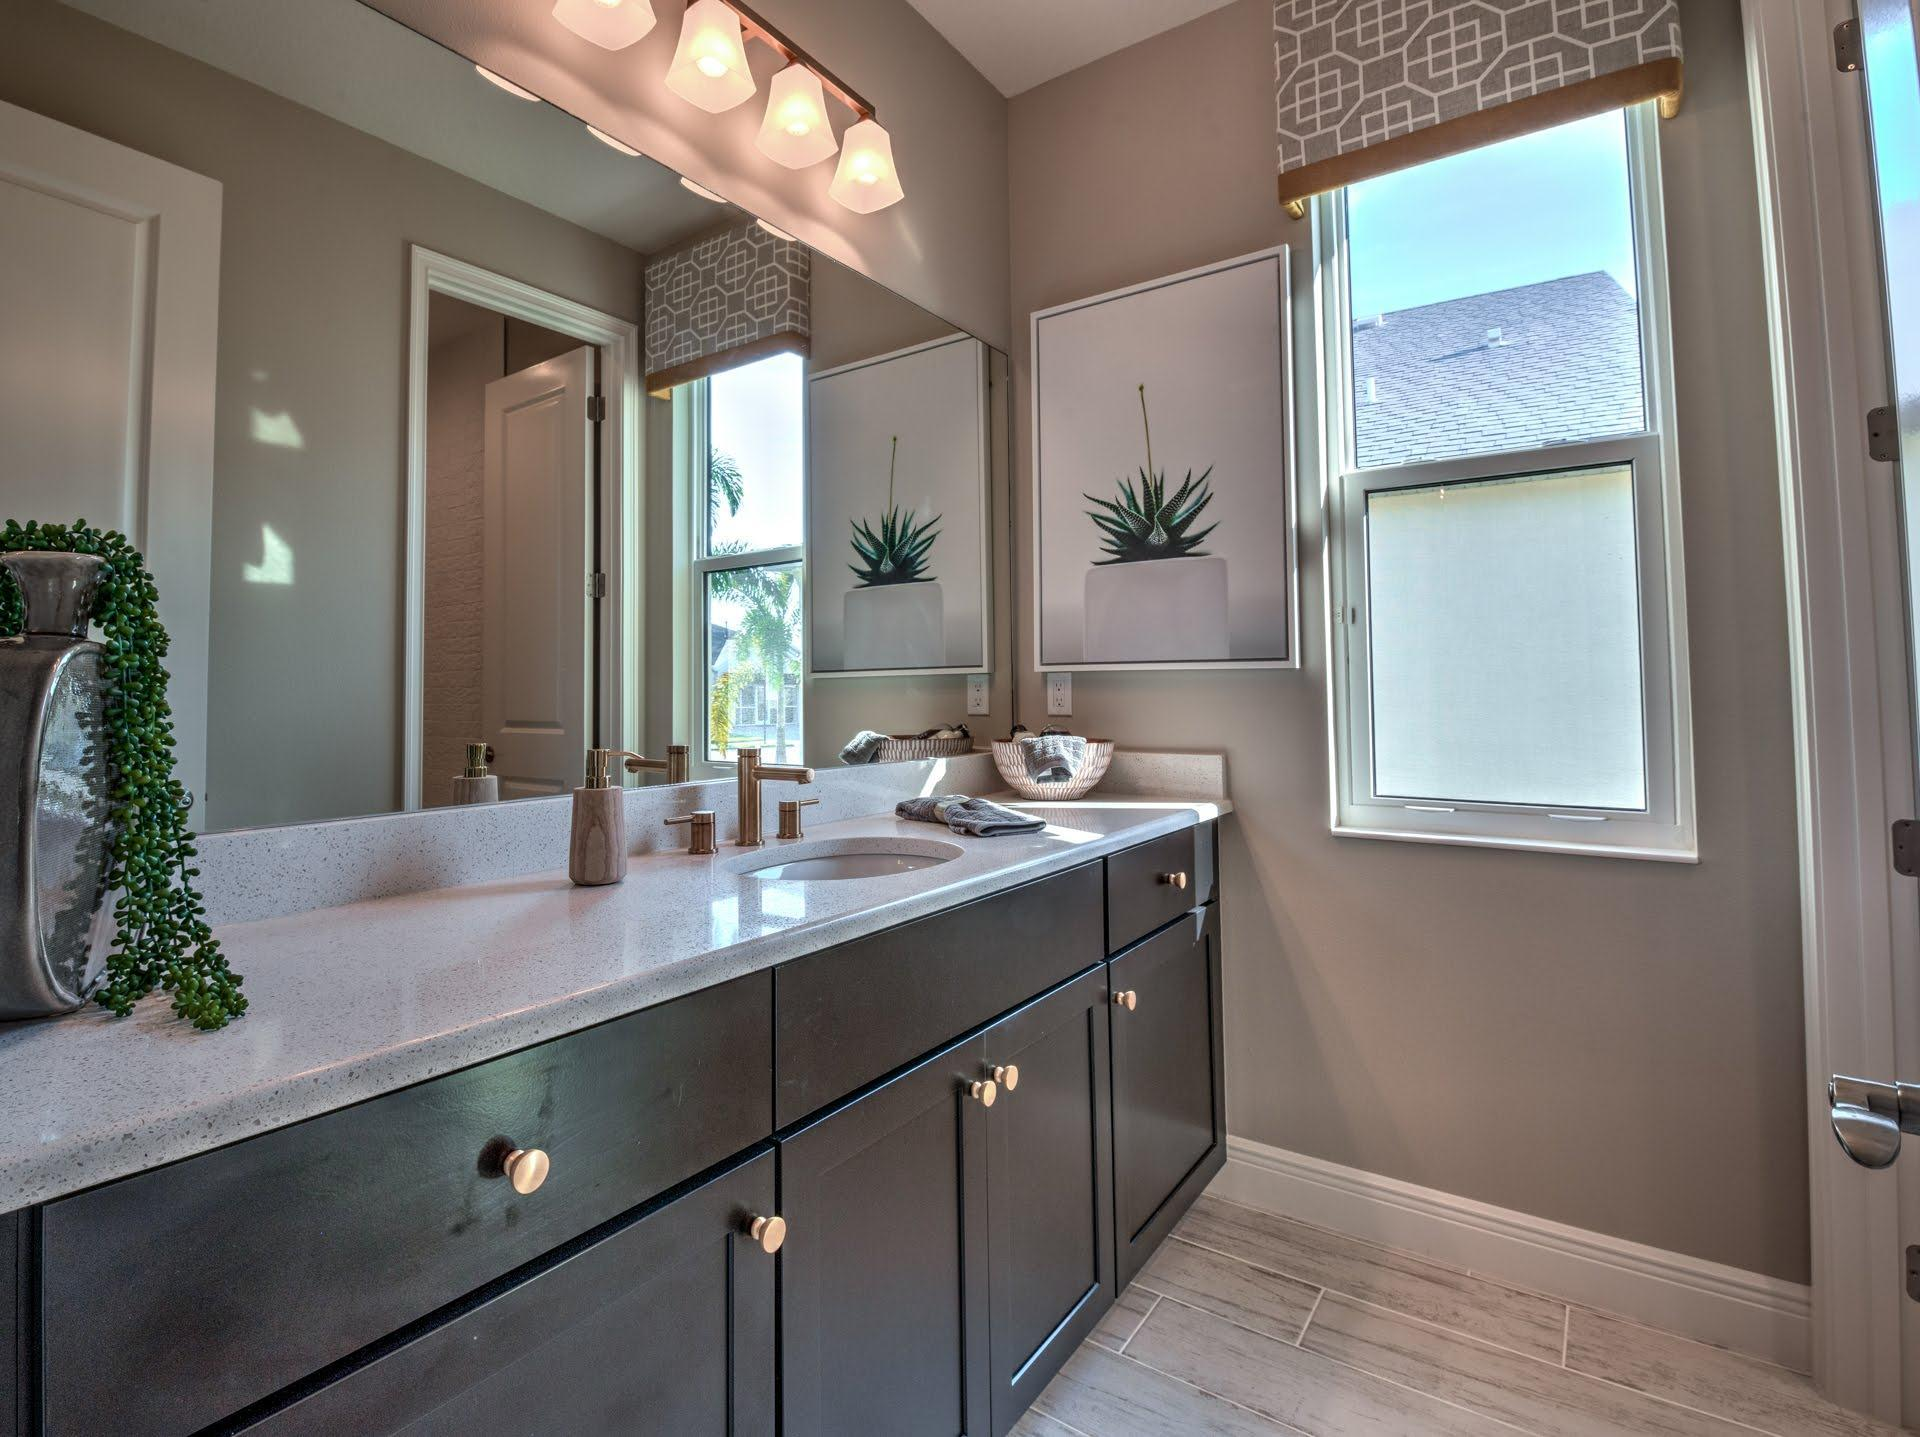 Bathroom featured in the Biscayne By Sam Rodgers  in Sarasota-Bradenton, FL